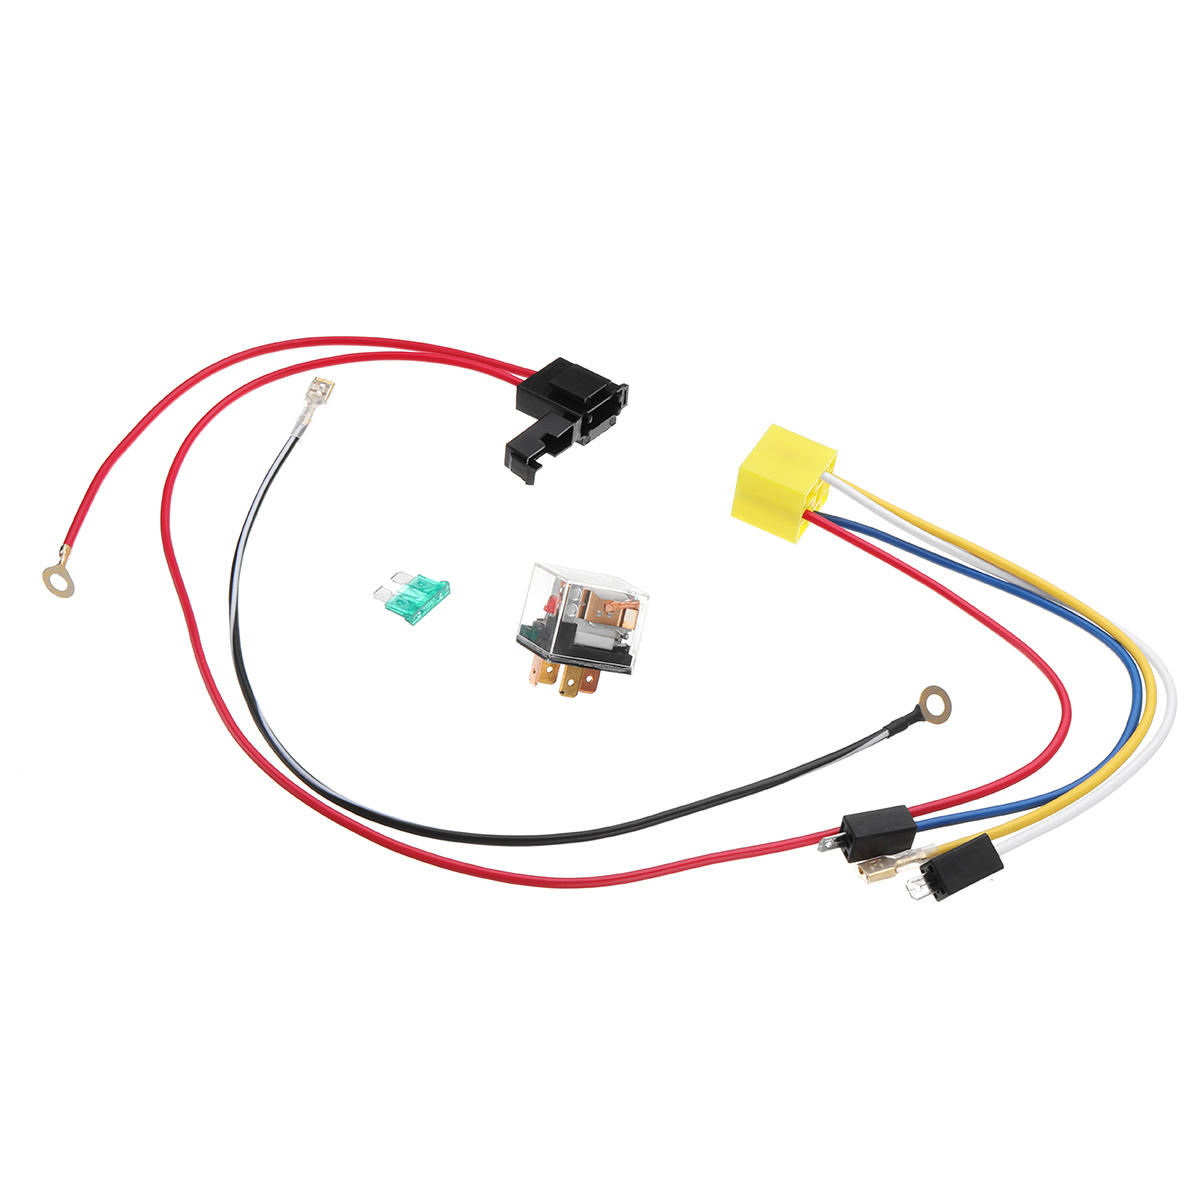 hight resolution of 12v dual tone electric air horn wiring harness relay for car truck van train boat universal cod